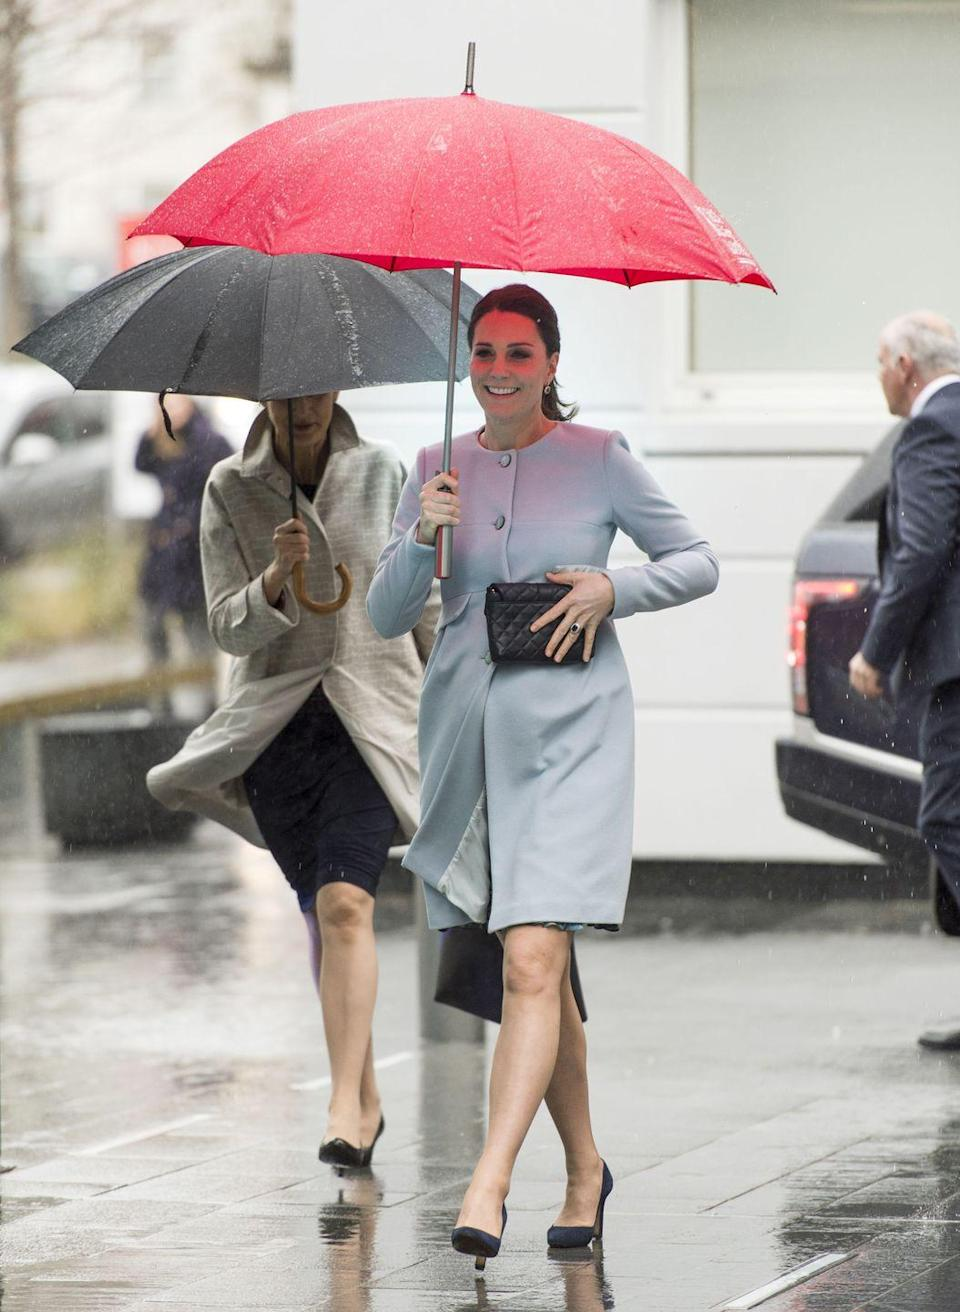 """<p>The Duchess stepped out on a rainy day in London in a pale blue cashmere blend coat <a href=""""https://go.redirectingat.com?id=74968X1596630&url=https%3A%2F%2Fwww.seraphine.com%2Fen-us%2Fnatasha-cashmere-blend-coat.html&sref=https%3A%2F%2Fwww.townandcountrymag.com%2Fstyle%2Ffashion-trends%2Fnews%2Fg1633%2Fkate-middleton-fashion%2F"""" rel=""""nofollow noopener"""" target=""""_blank"""" data-ylk=""""slk:by Seraphine, which is still on sale for $299."""" class=""""link rapid-noclick-resp"""">by Seraphine, which is still on sale for $299.</a> She accessorized with a black clutch and black heels.</p>"""